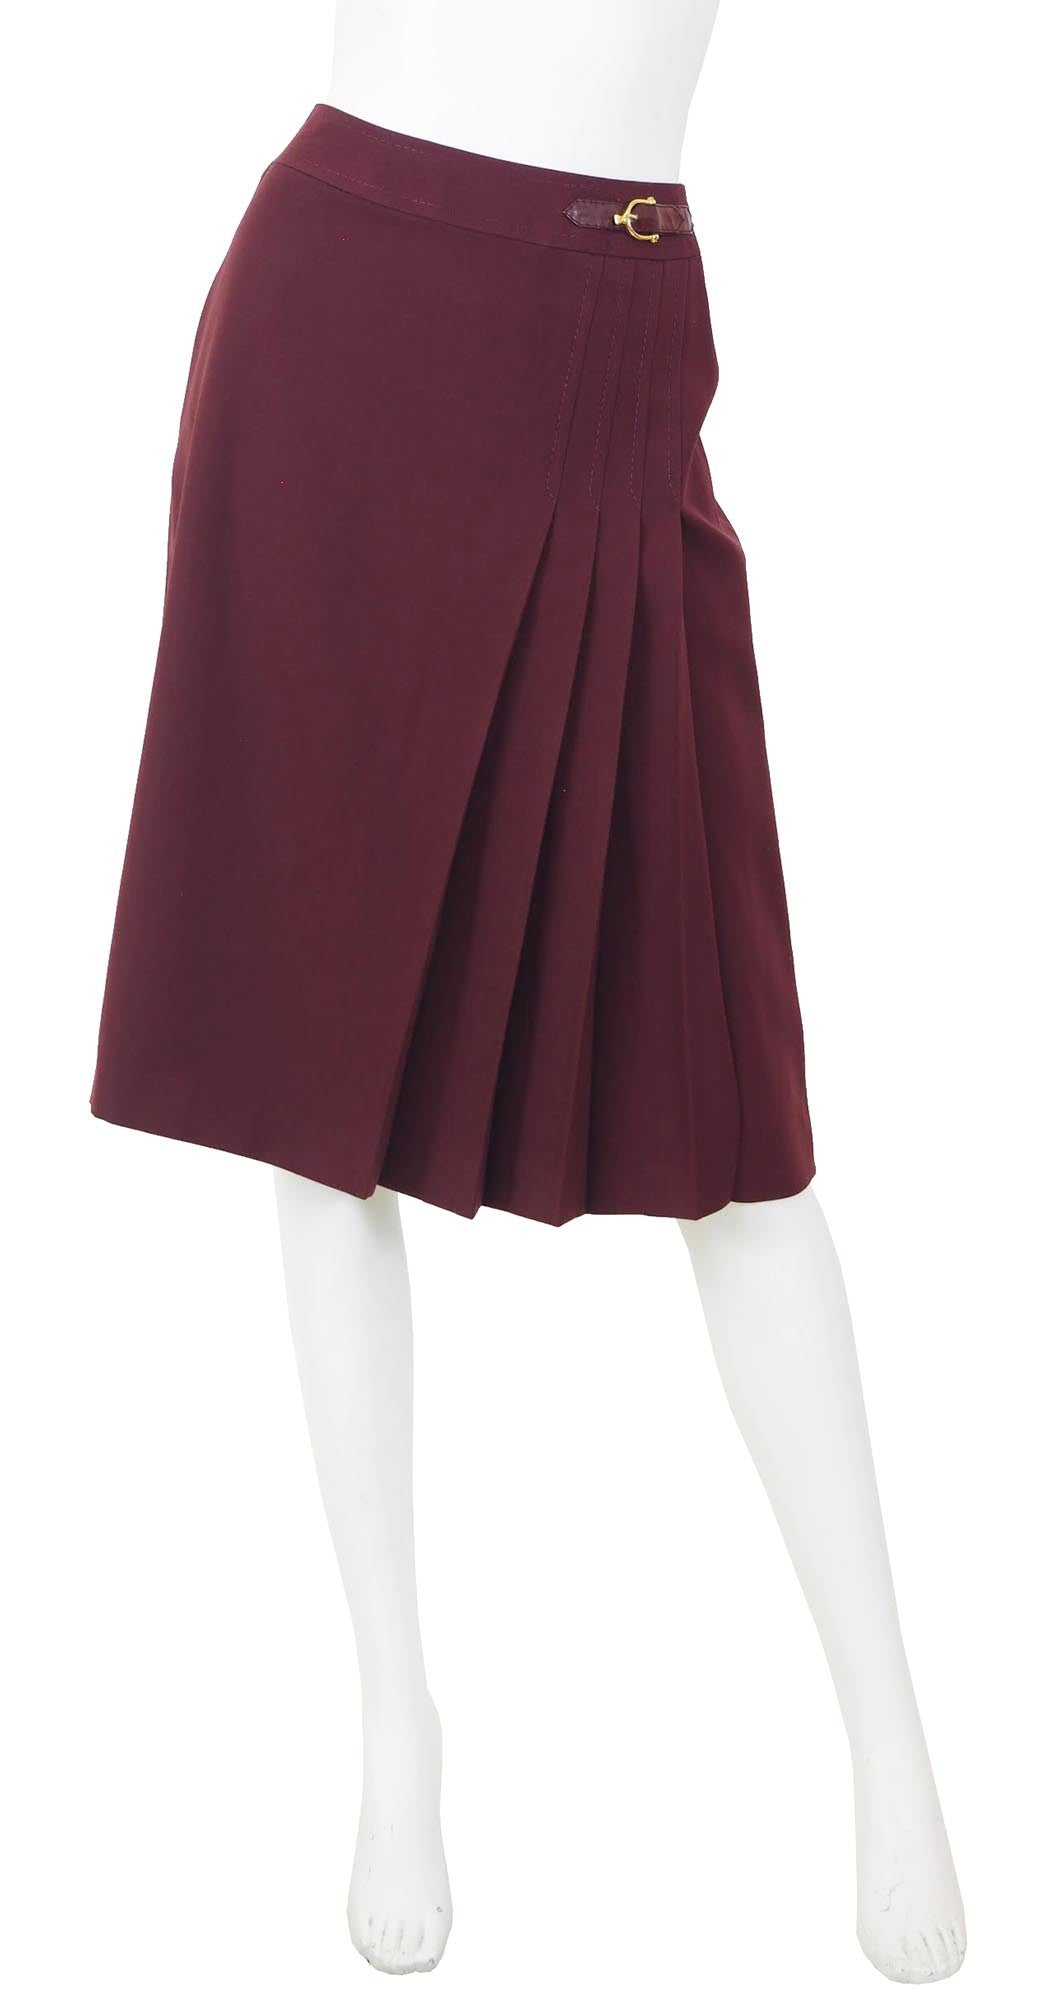 1970s Burgundy Wool Pleated Horsebit Skirt